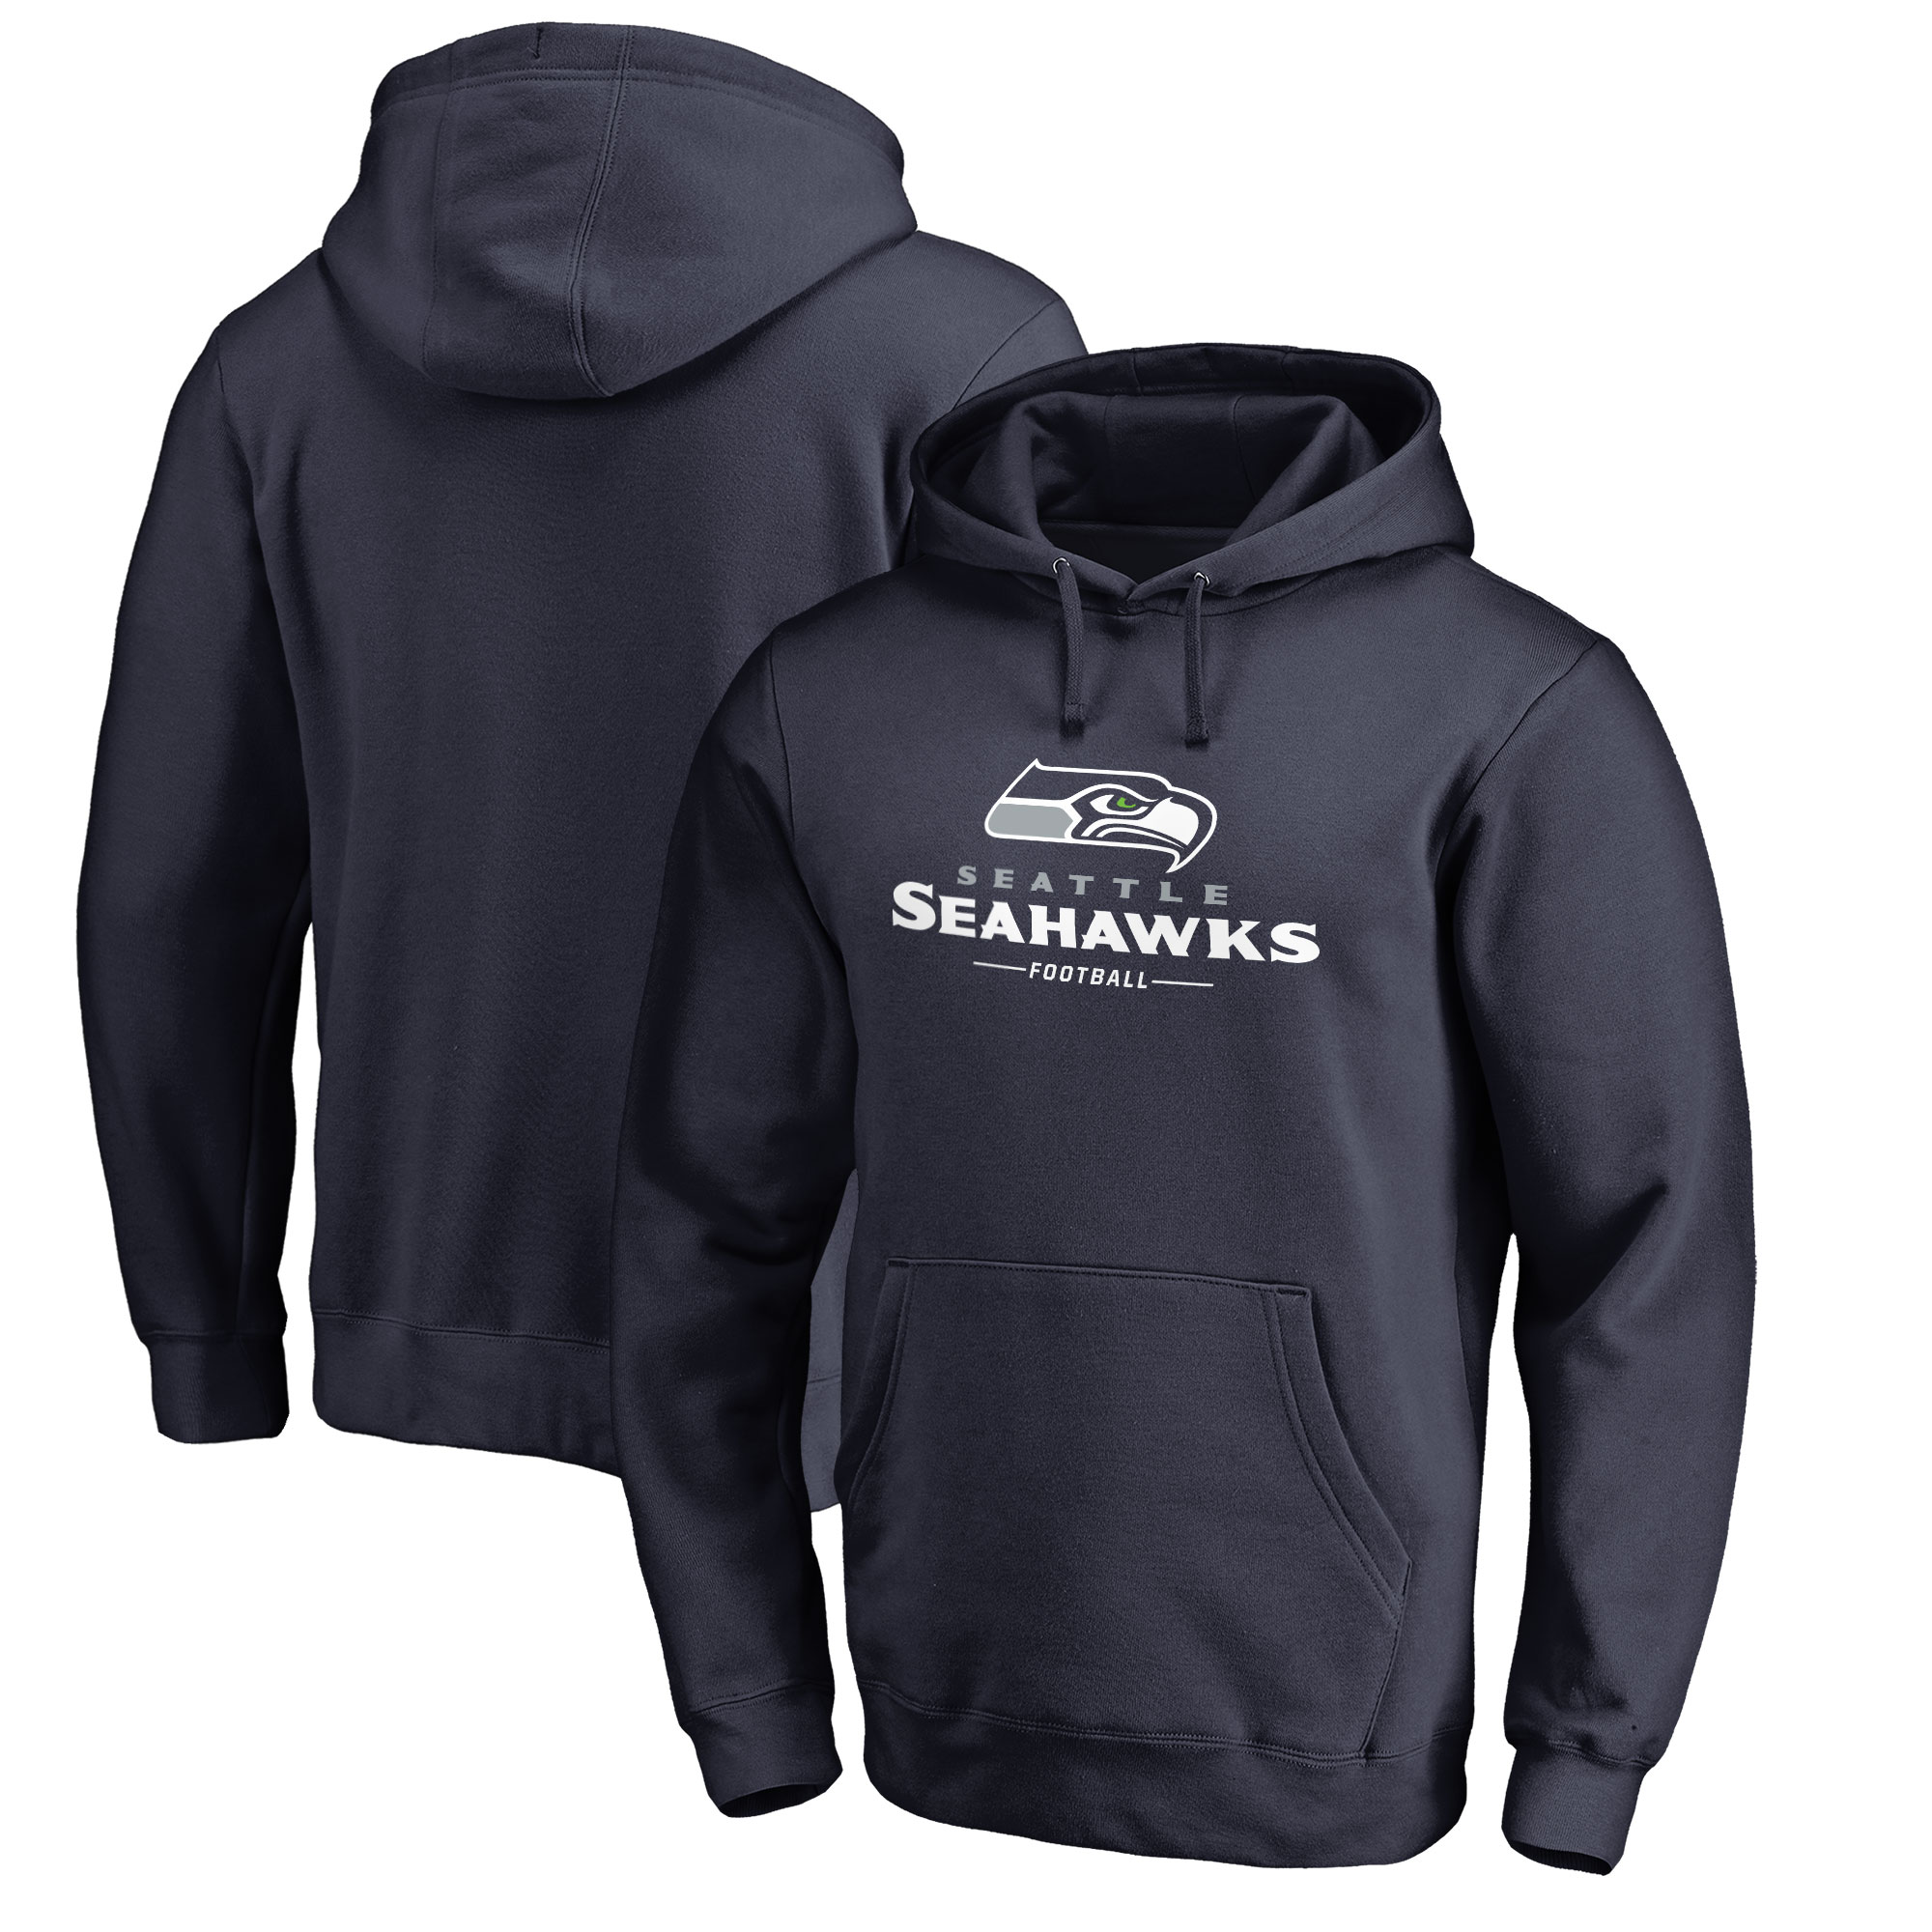 Seattle Seahawks NFL Pro Line by Fanatics Branded Team Lockup Pullover Hoodie - College Navy